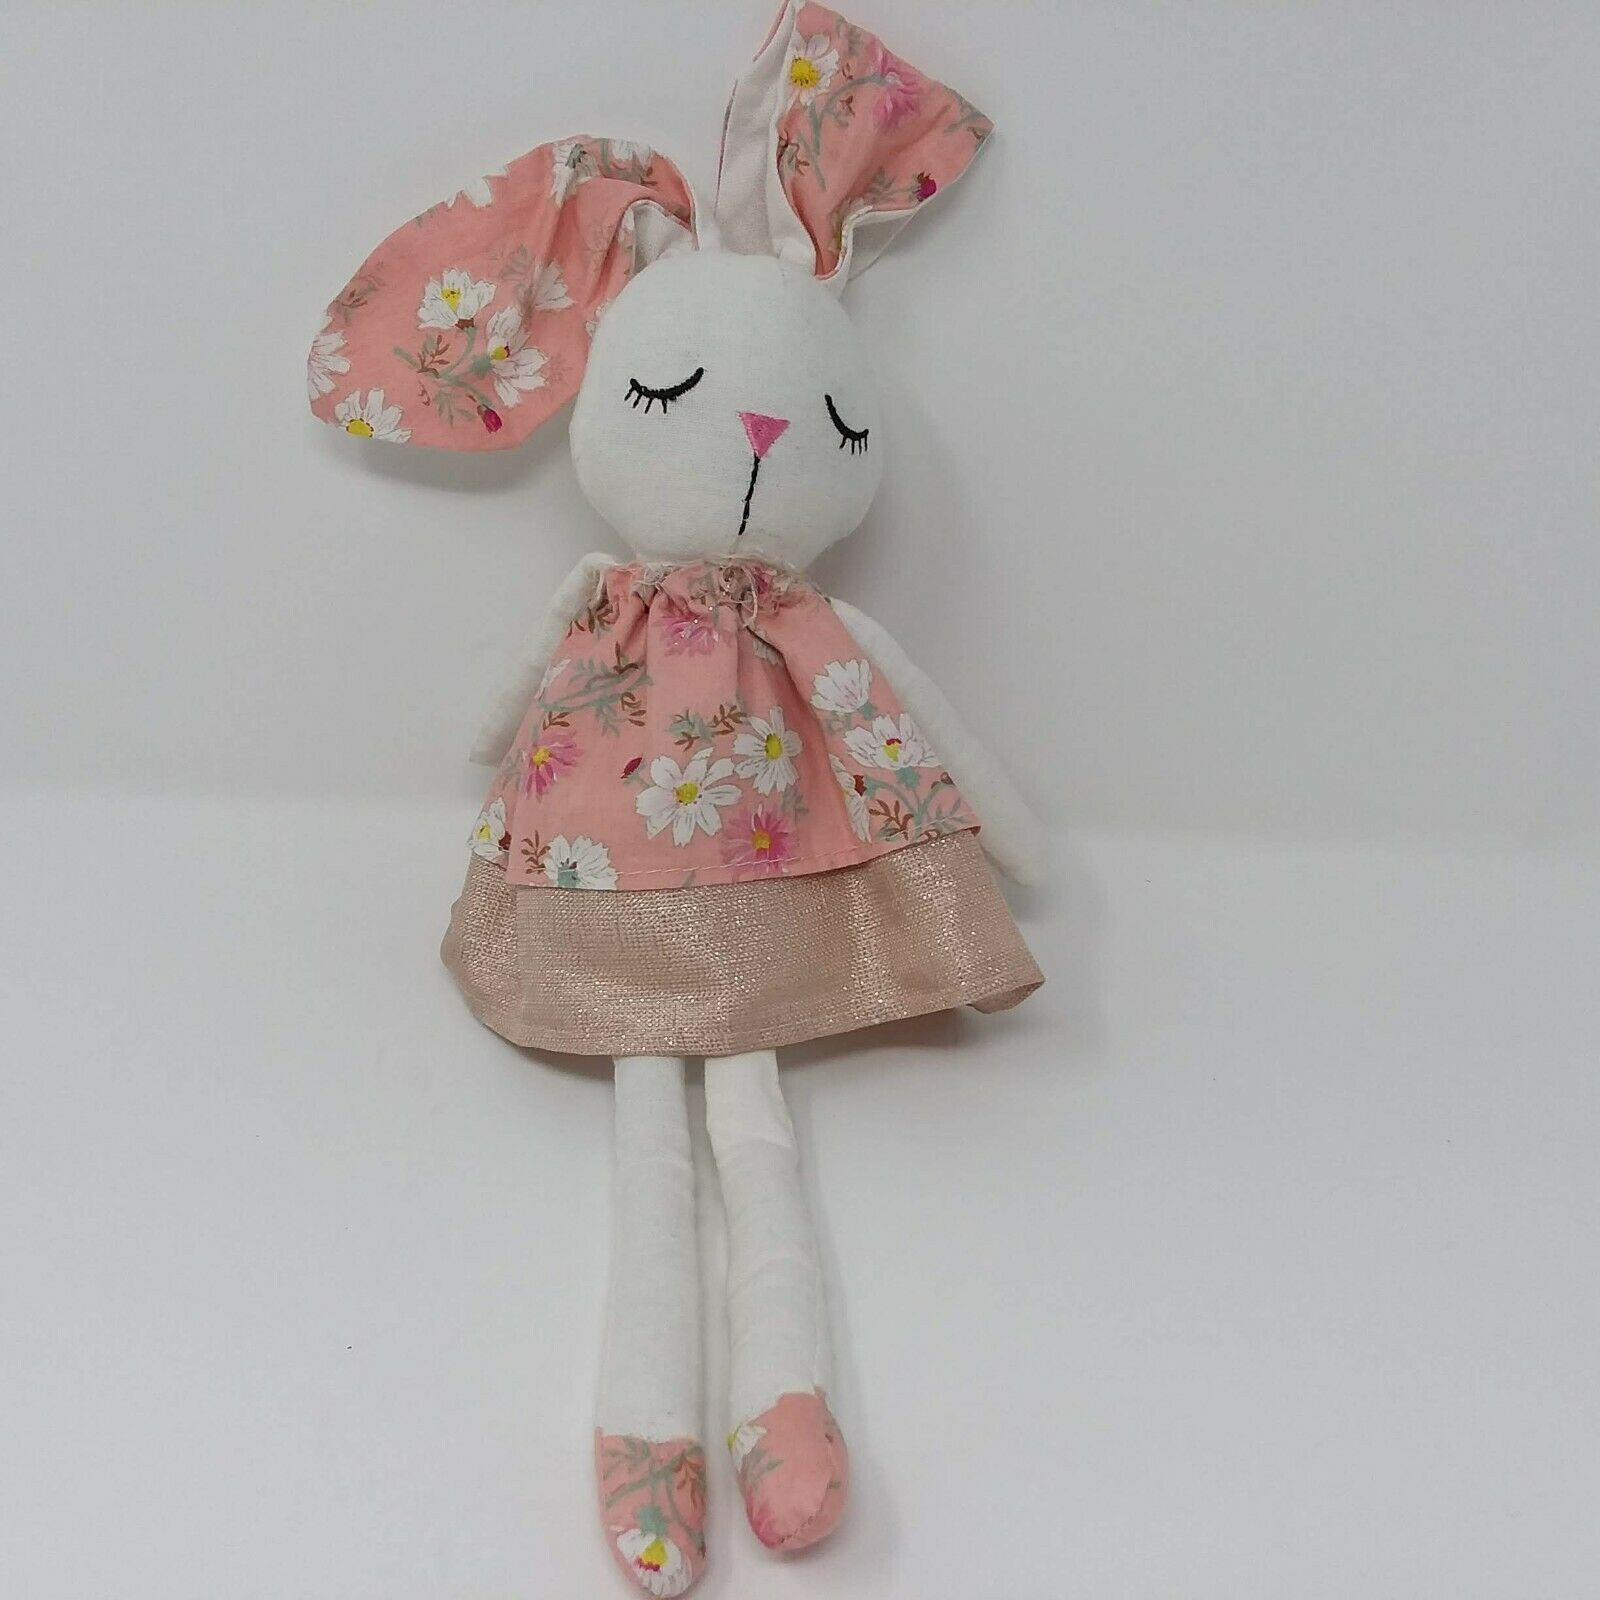 Mud Pie Girl Doll Rabbit Bunny Pink Floral Ears Dress Easter Fabric Plush Toy - $37.36